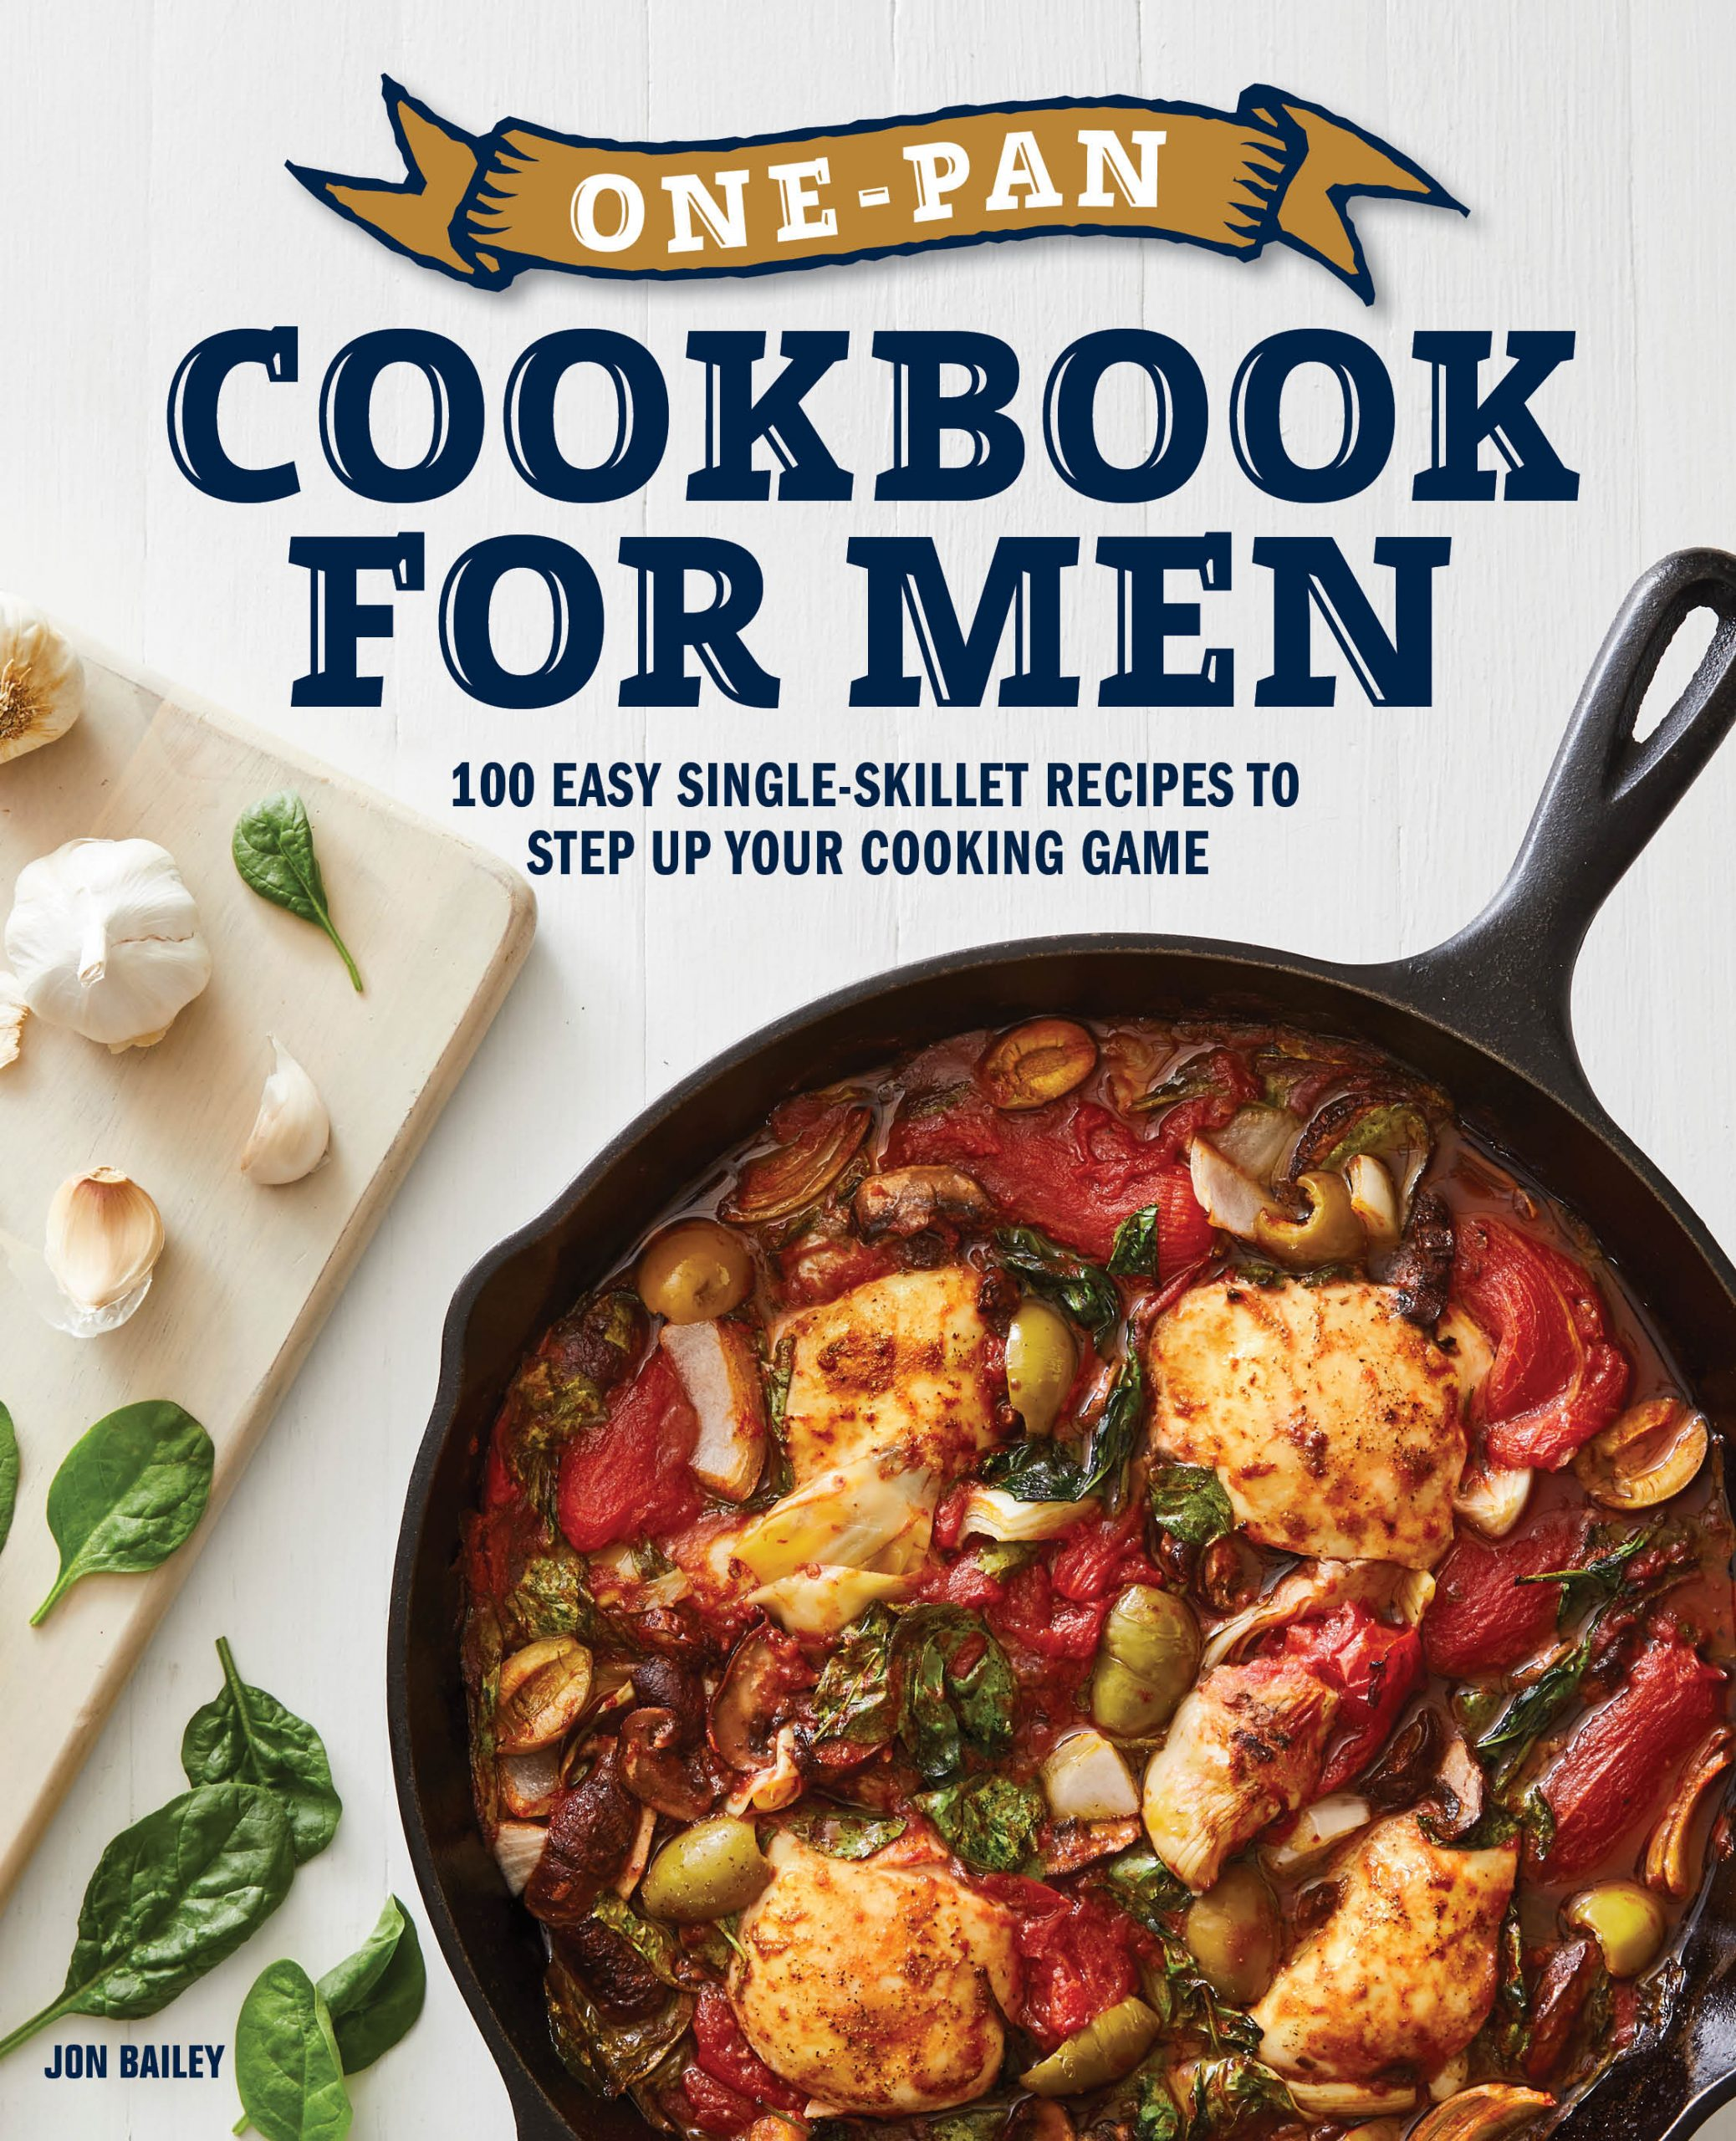 One-Pan Cookbook for Men by Jon Bailey available on Amazon.com